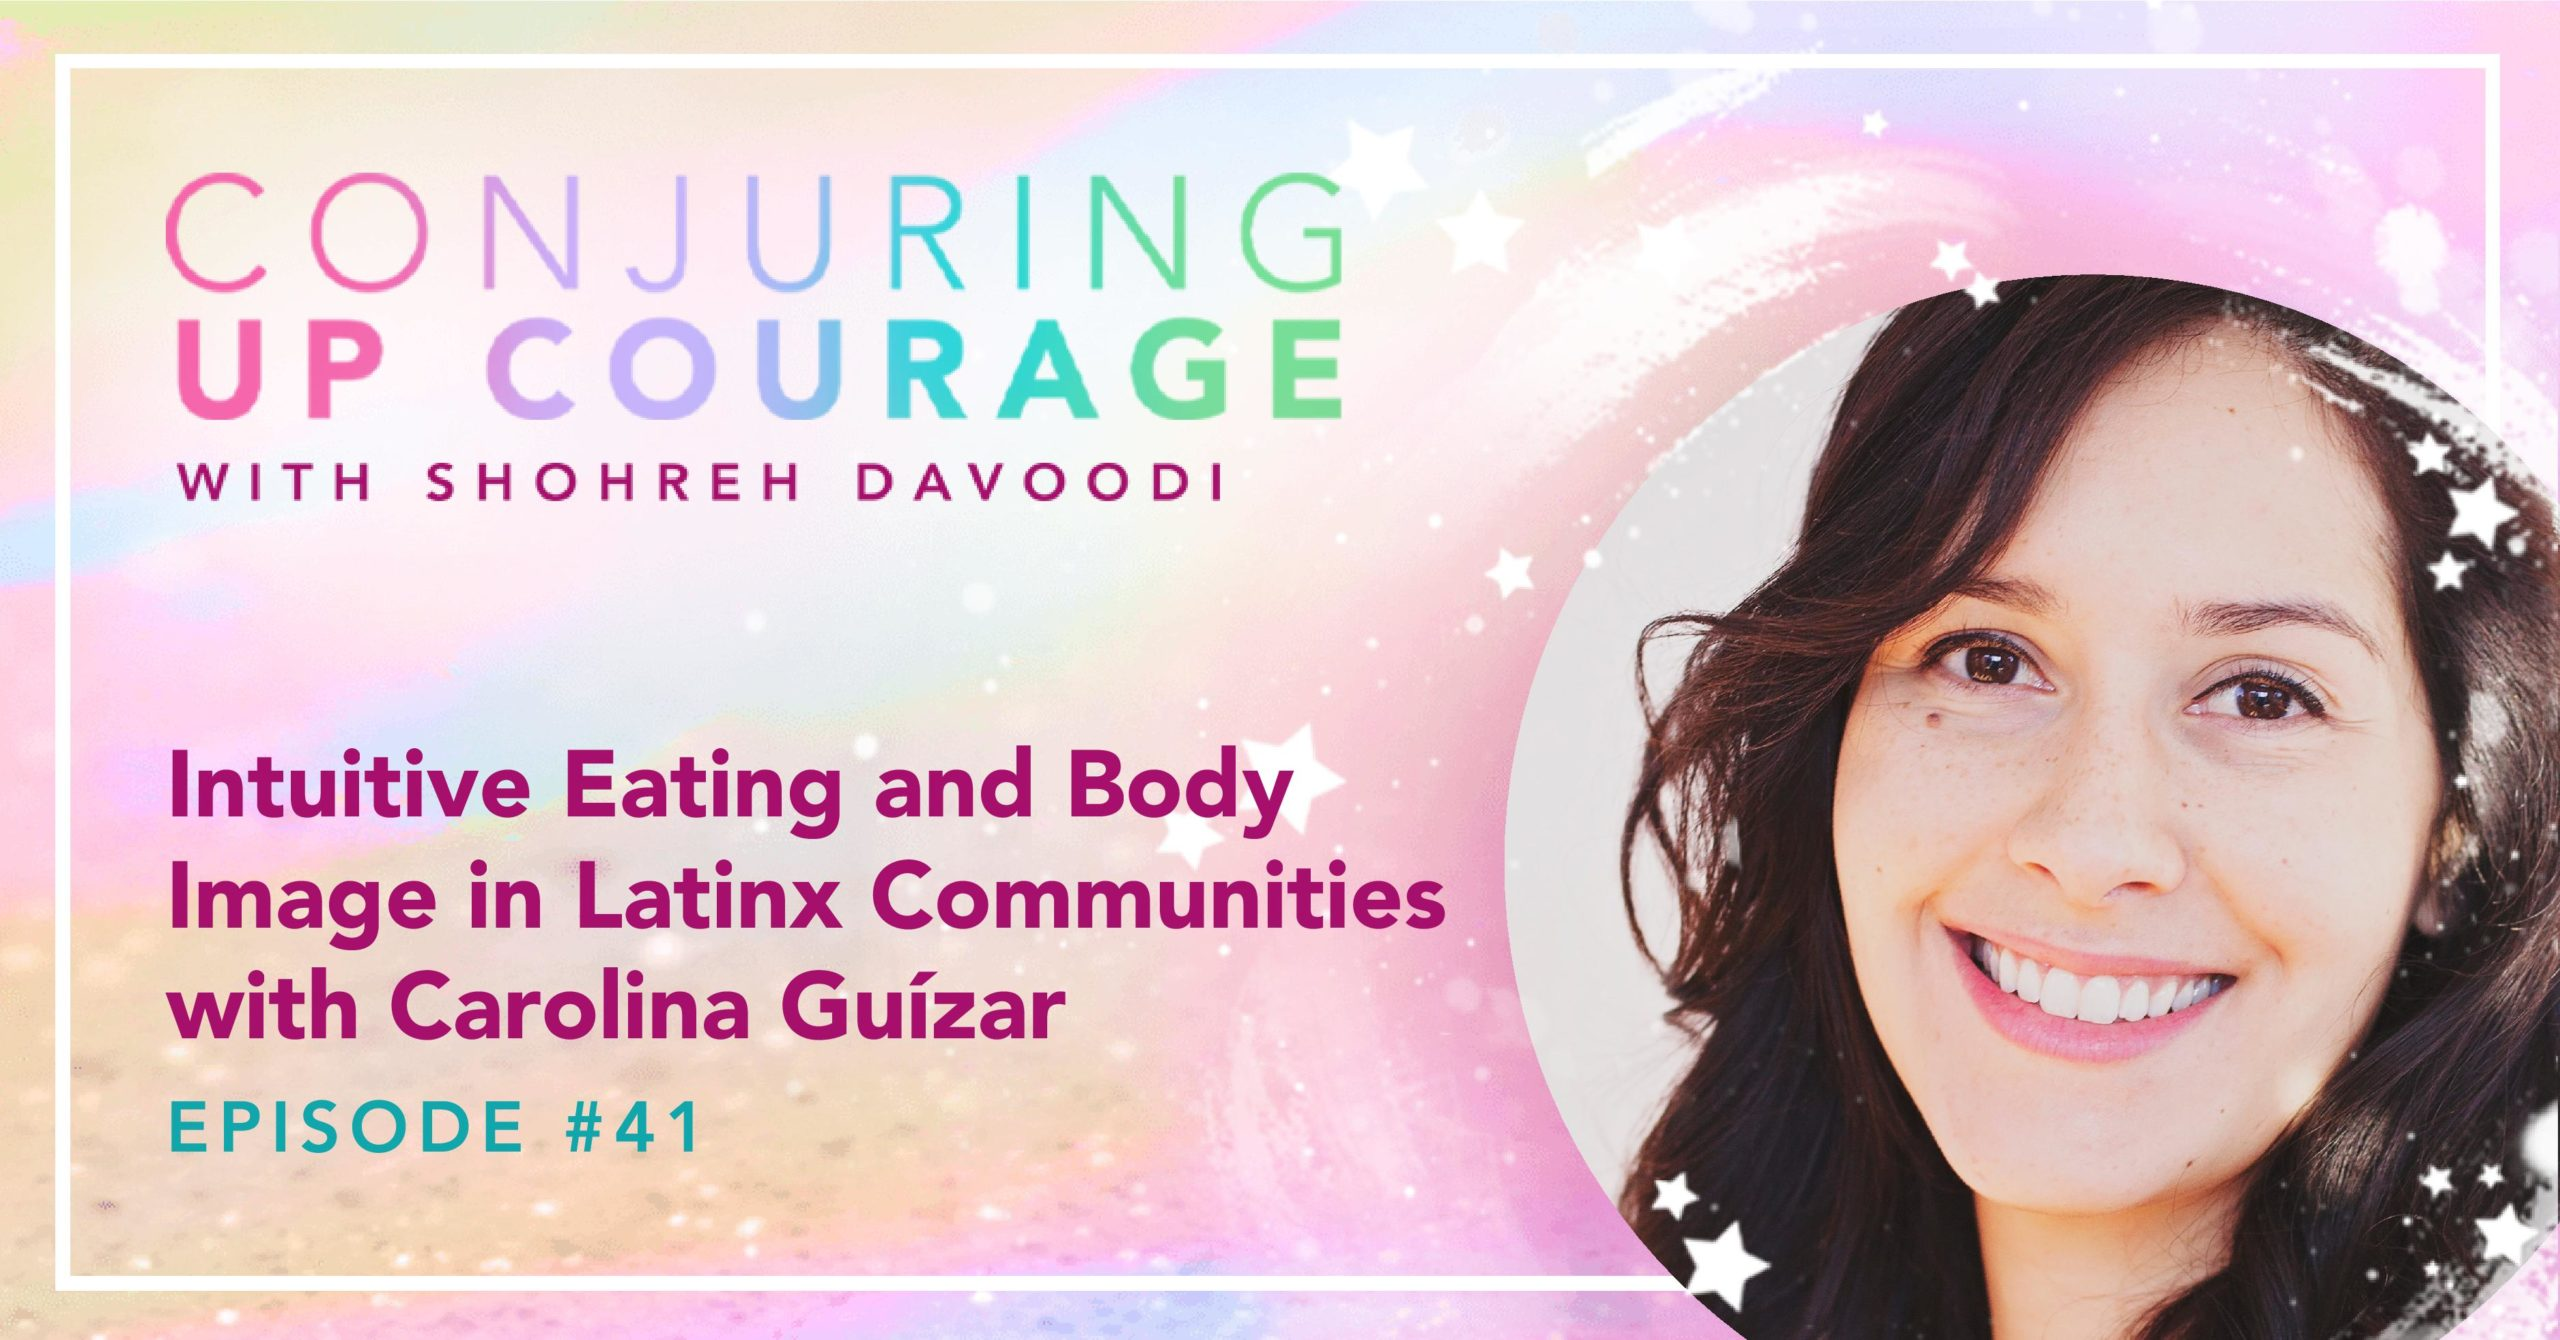 """The Conjuring Up Courage logo, a photo of Carolina, and the words, """"Intuitive Eating and Body Image in Latinx Communities with Carolina Guízar Episode #41"""""""